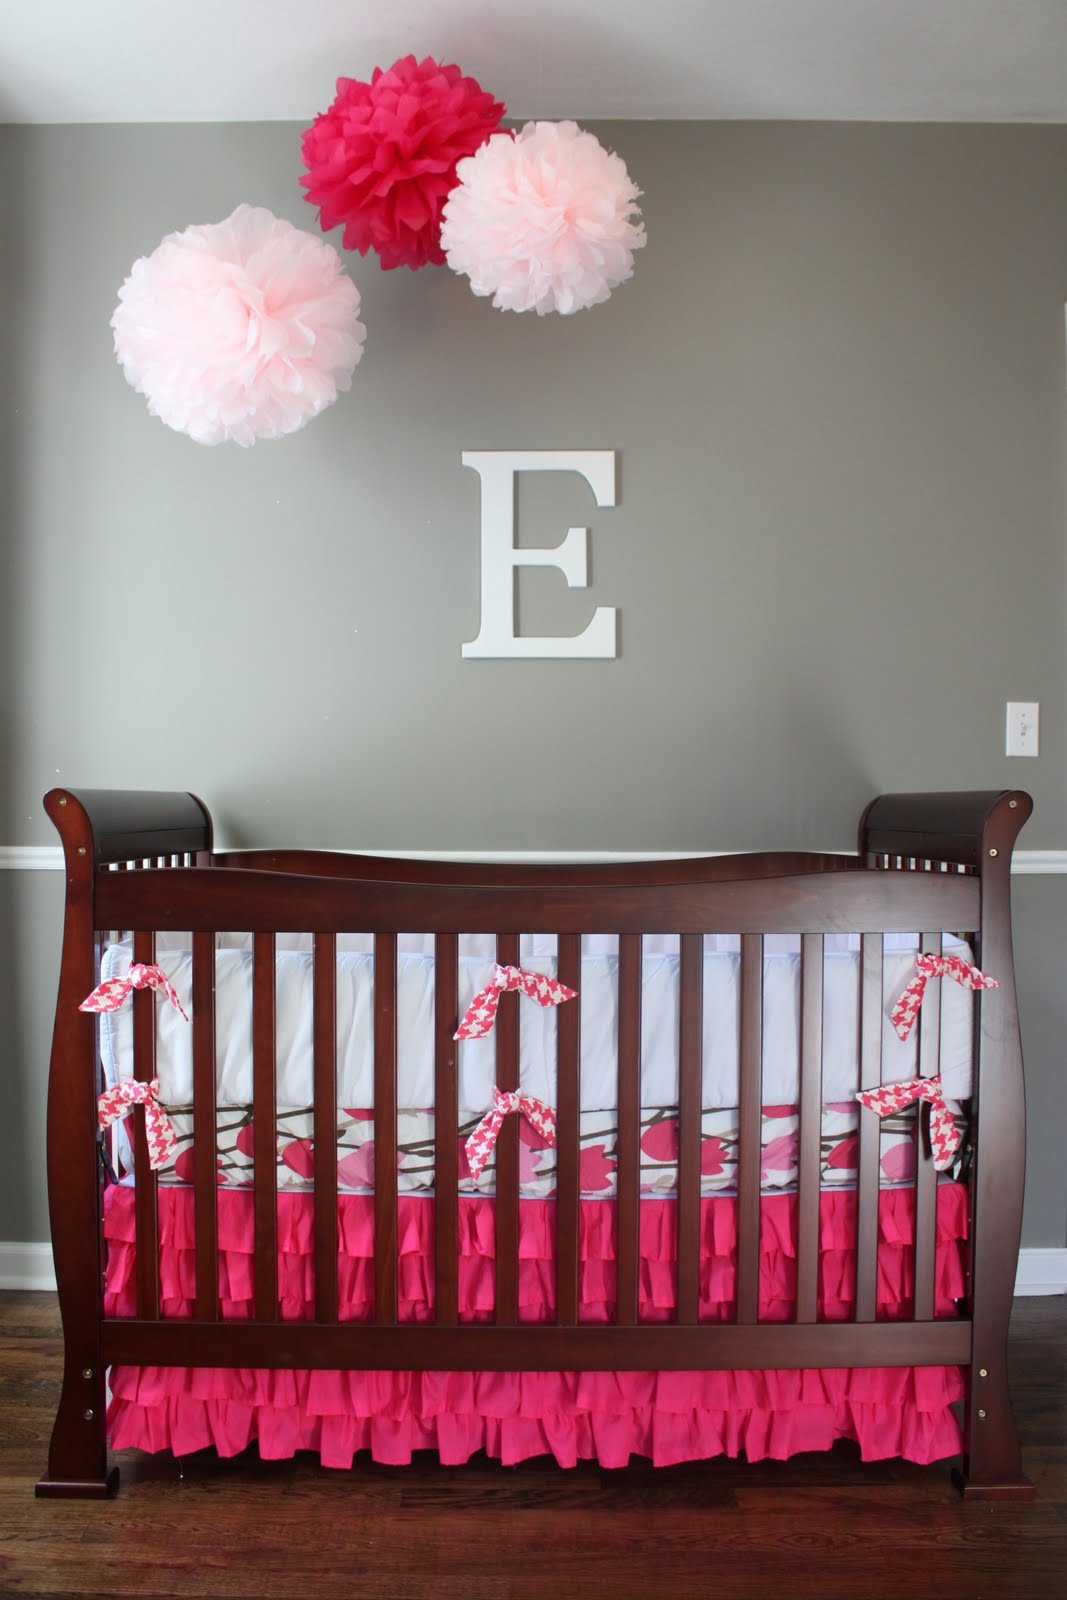 Baby Girl Nursery Decor Ideas Inspirational Simple Sage Designs Check This Out Baby Girl Nursery